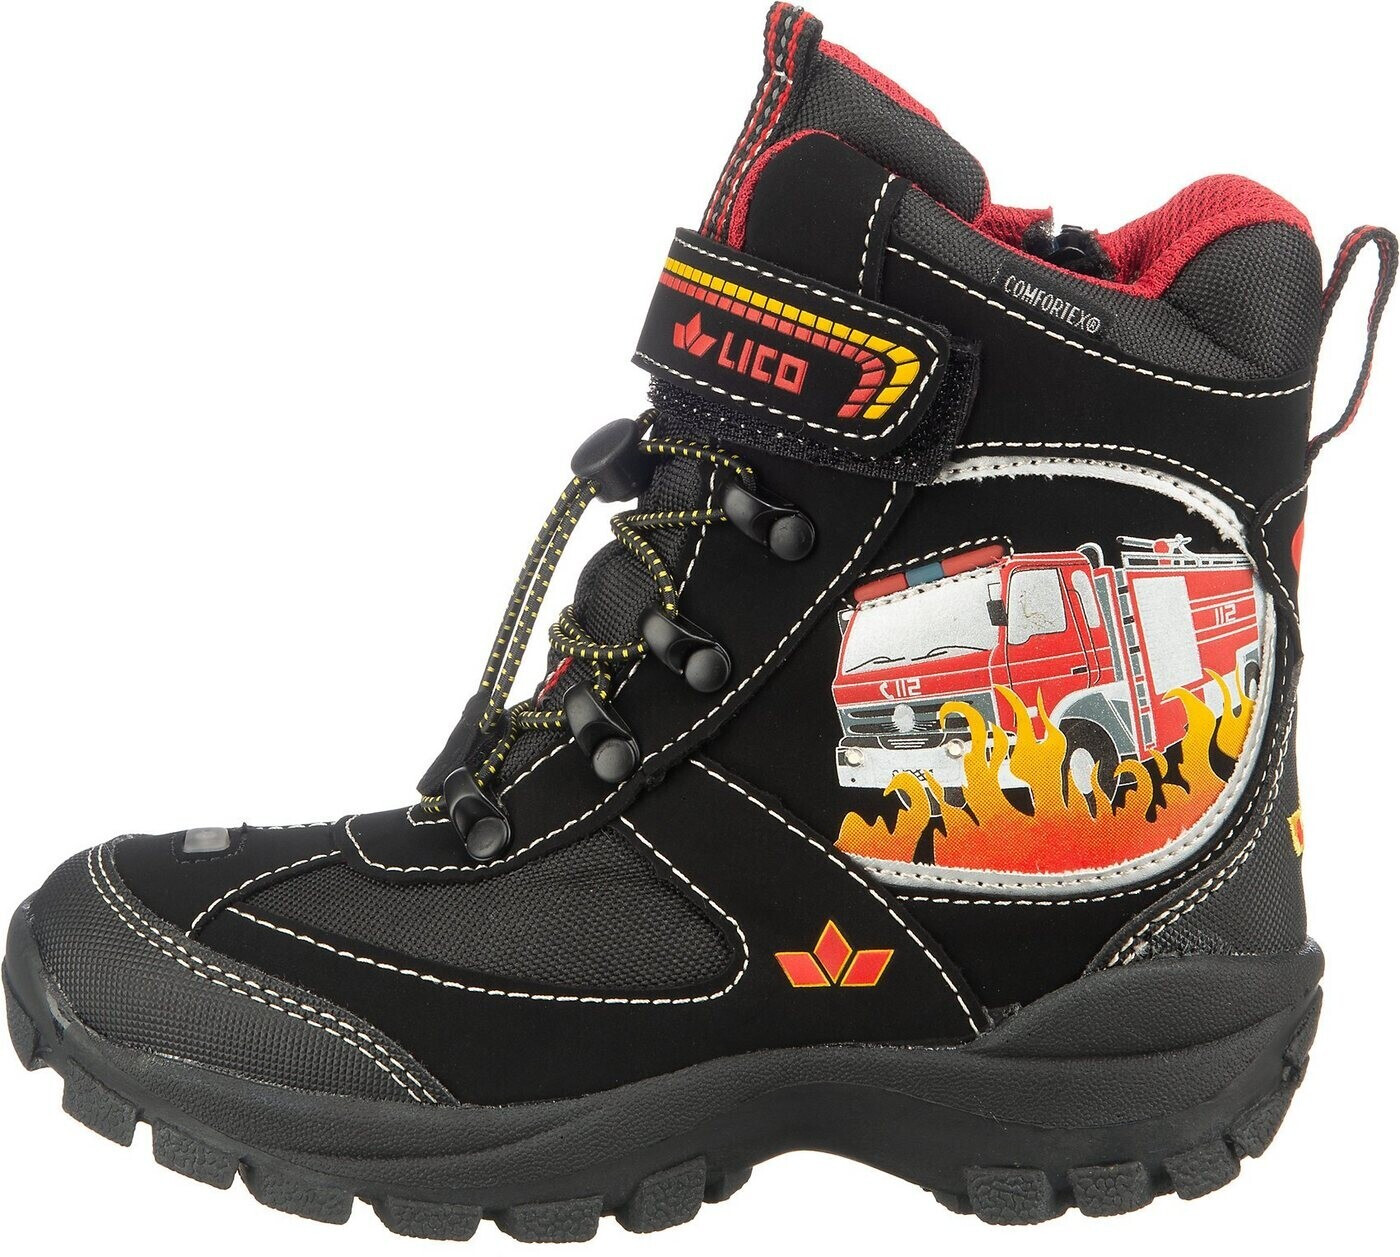 Lico Boots Hot vs Blinky Kids (300208) black/red/yellow